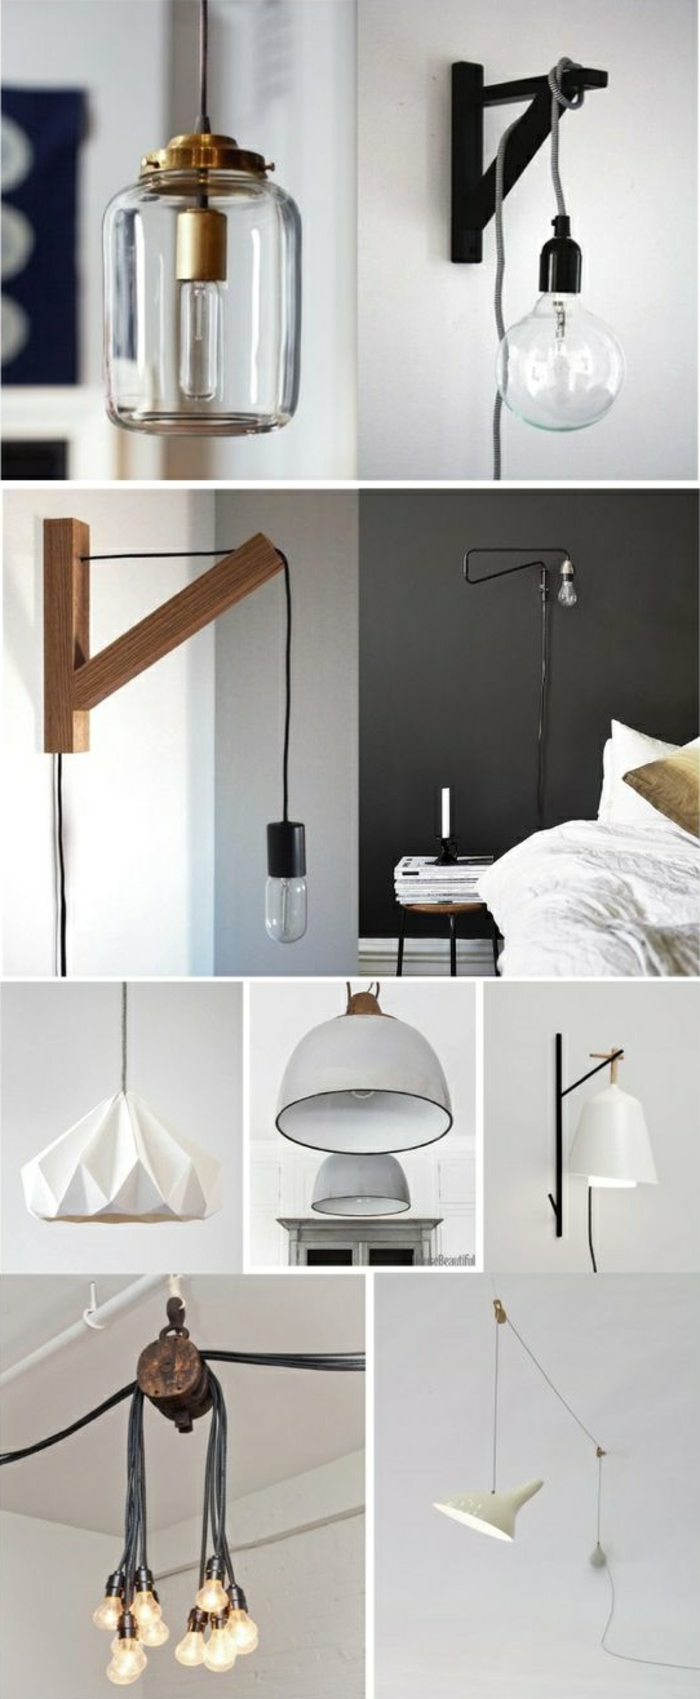 lampen schlafzimmer ideen ideen f r die innenarchitektur ihres hauses. Black Bedroom Furniture Sets. Home Design Ideas